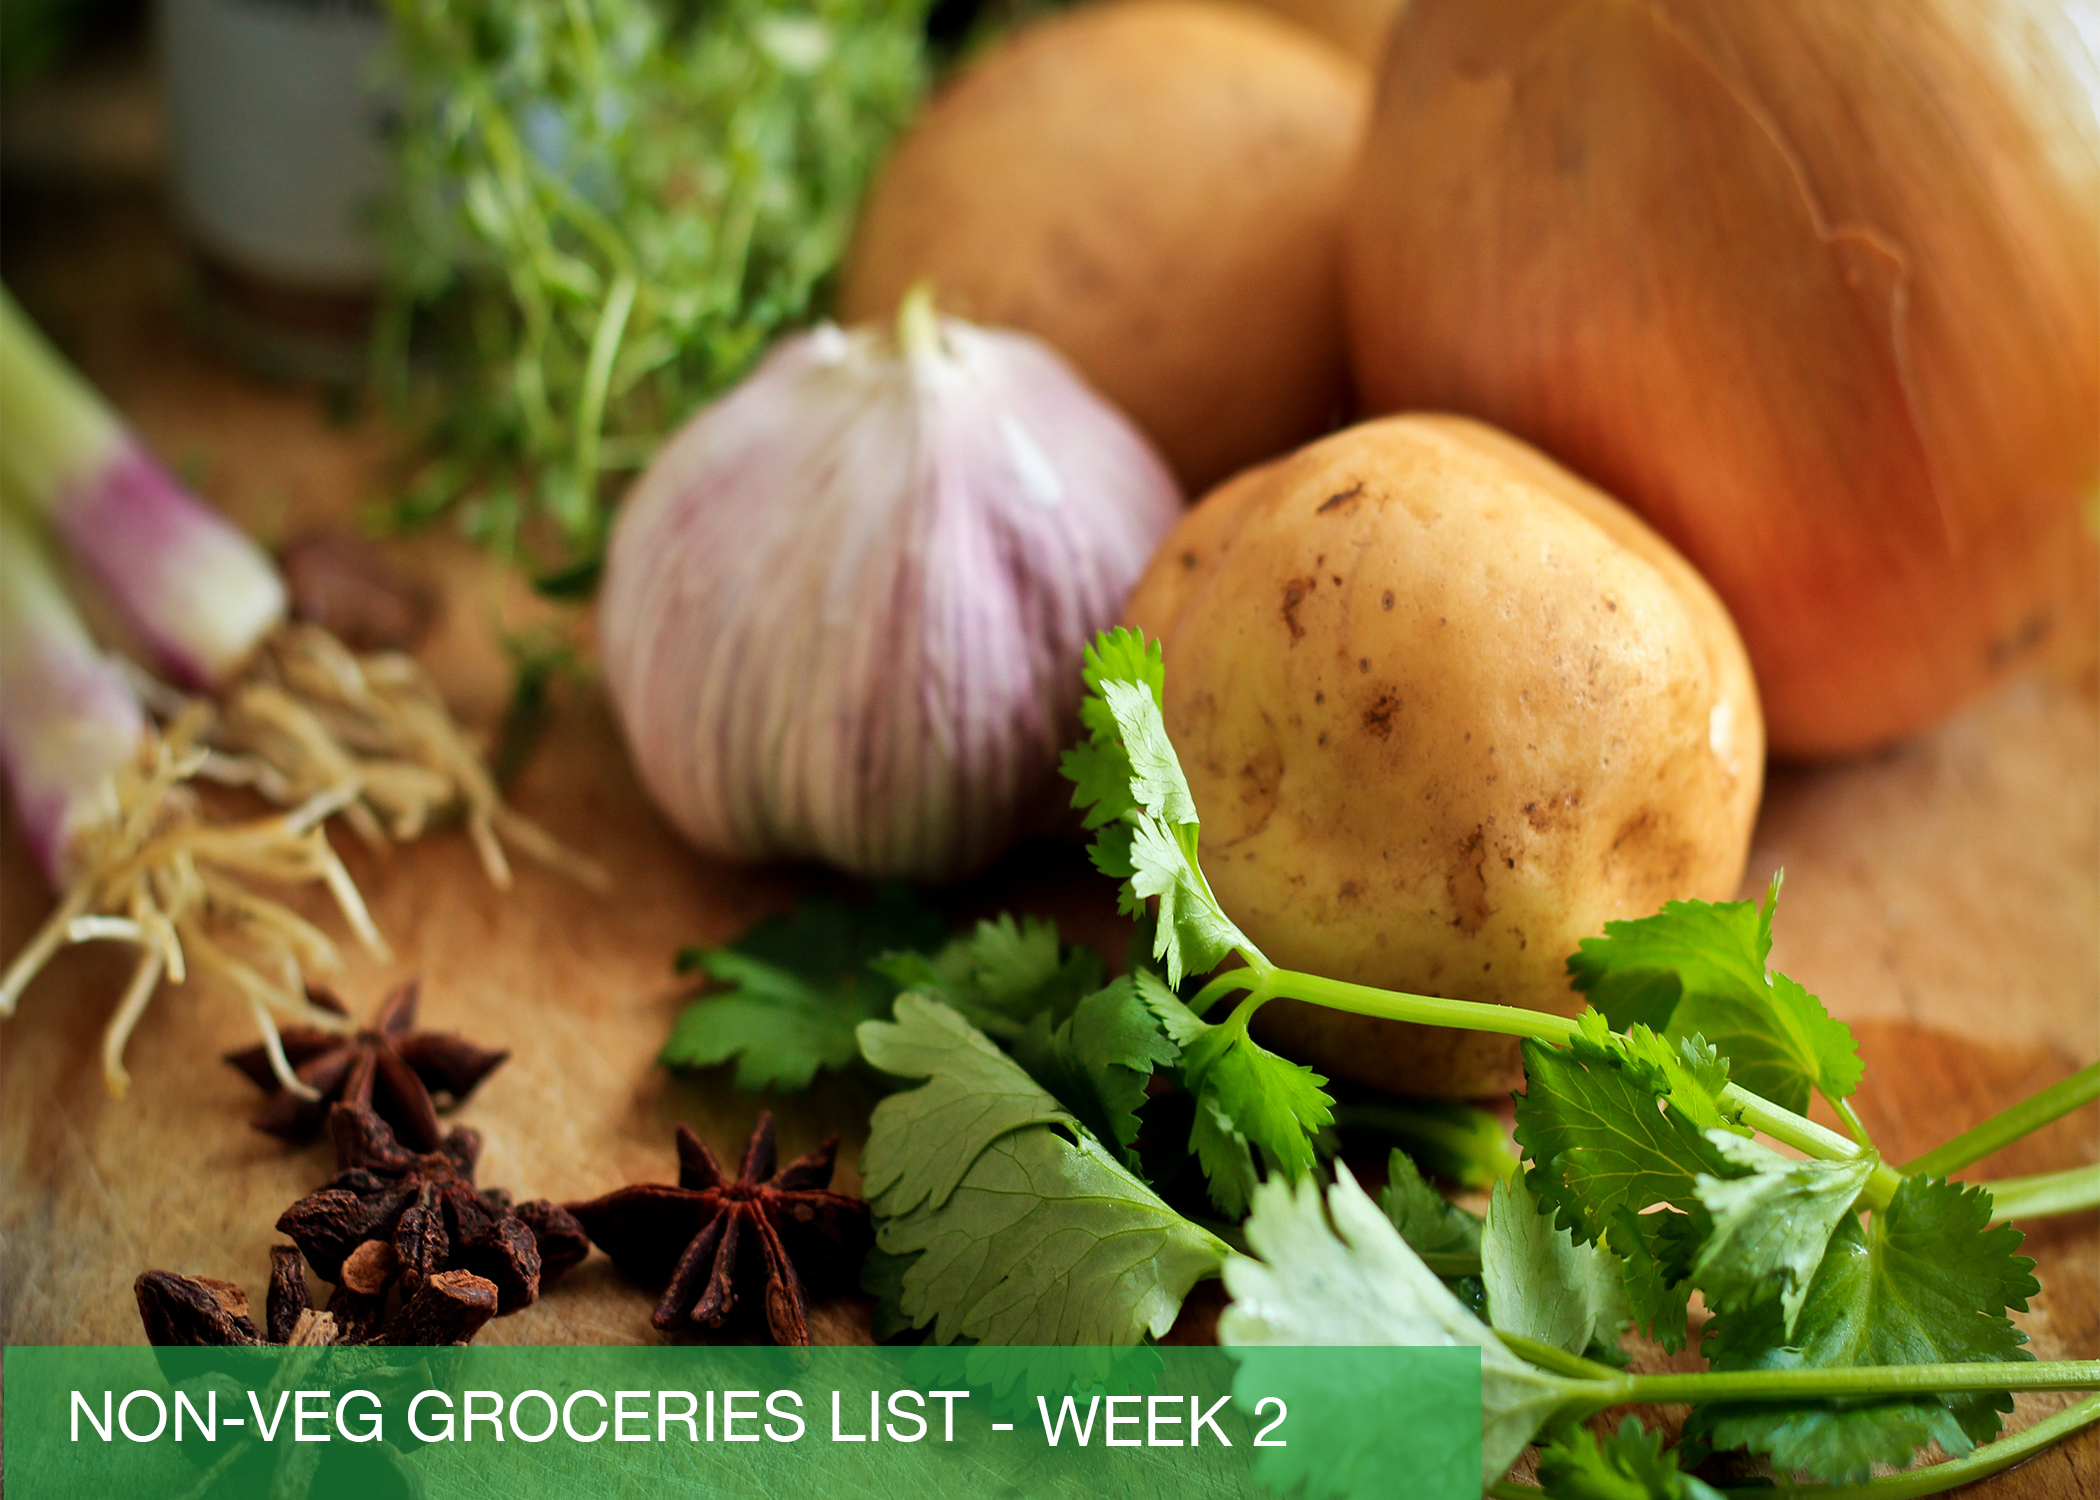 Non-Veg Groceries List - Week 2